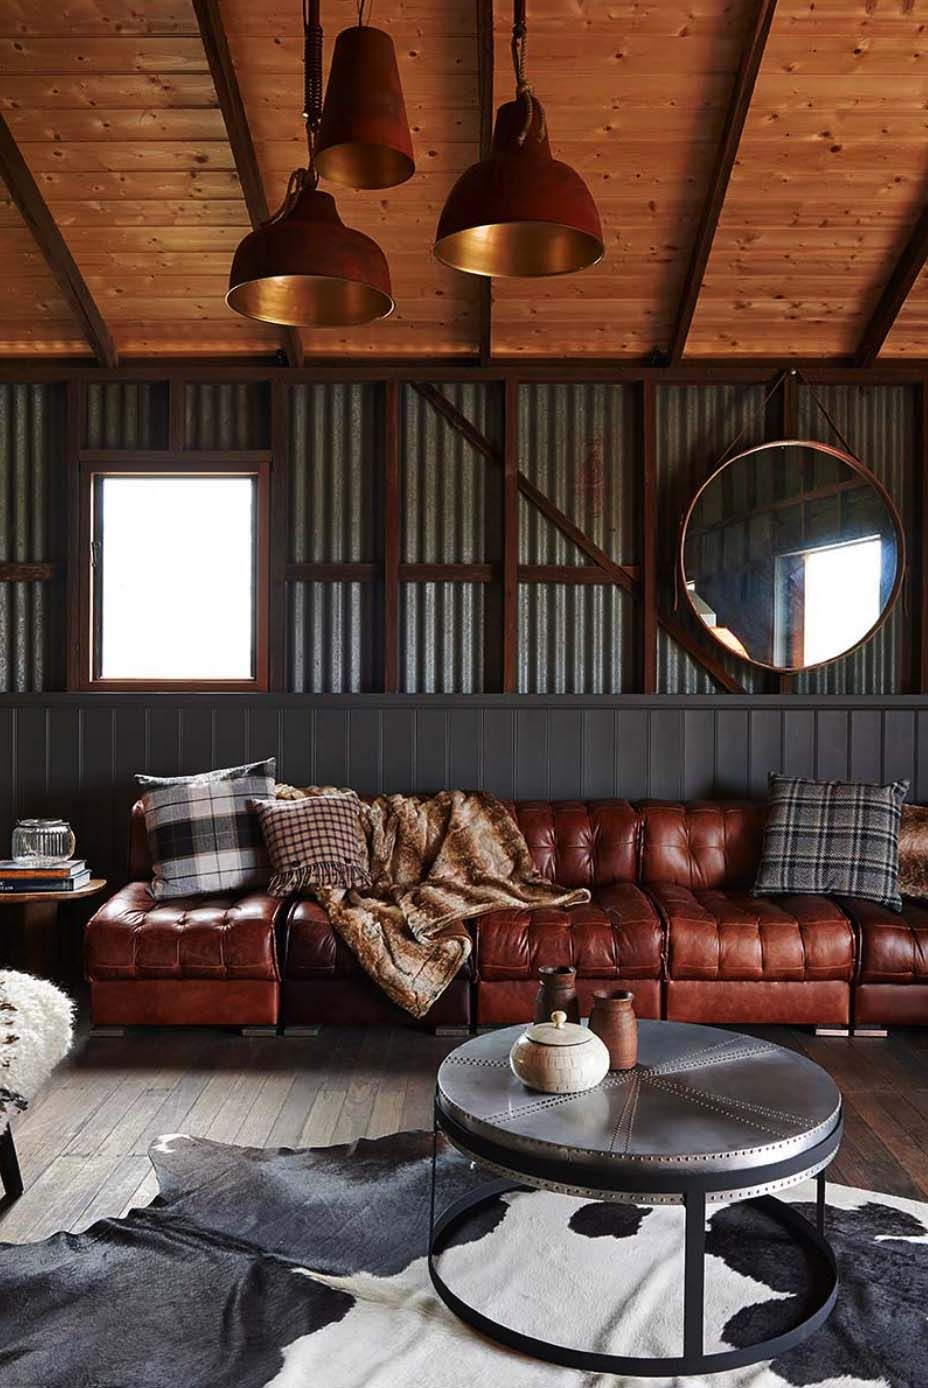 How To Get A Luxury Living Room Pt 1 Golden Lighting: Thinking Outside The Box: Modern Barn Conversion In Australia